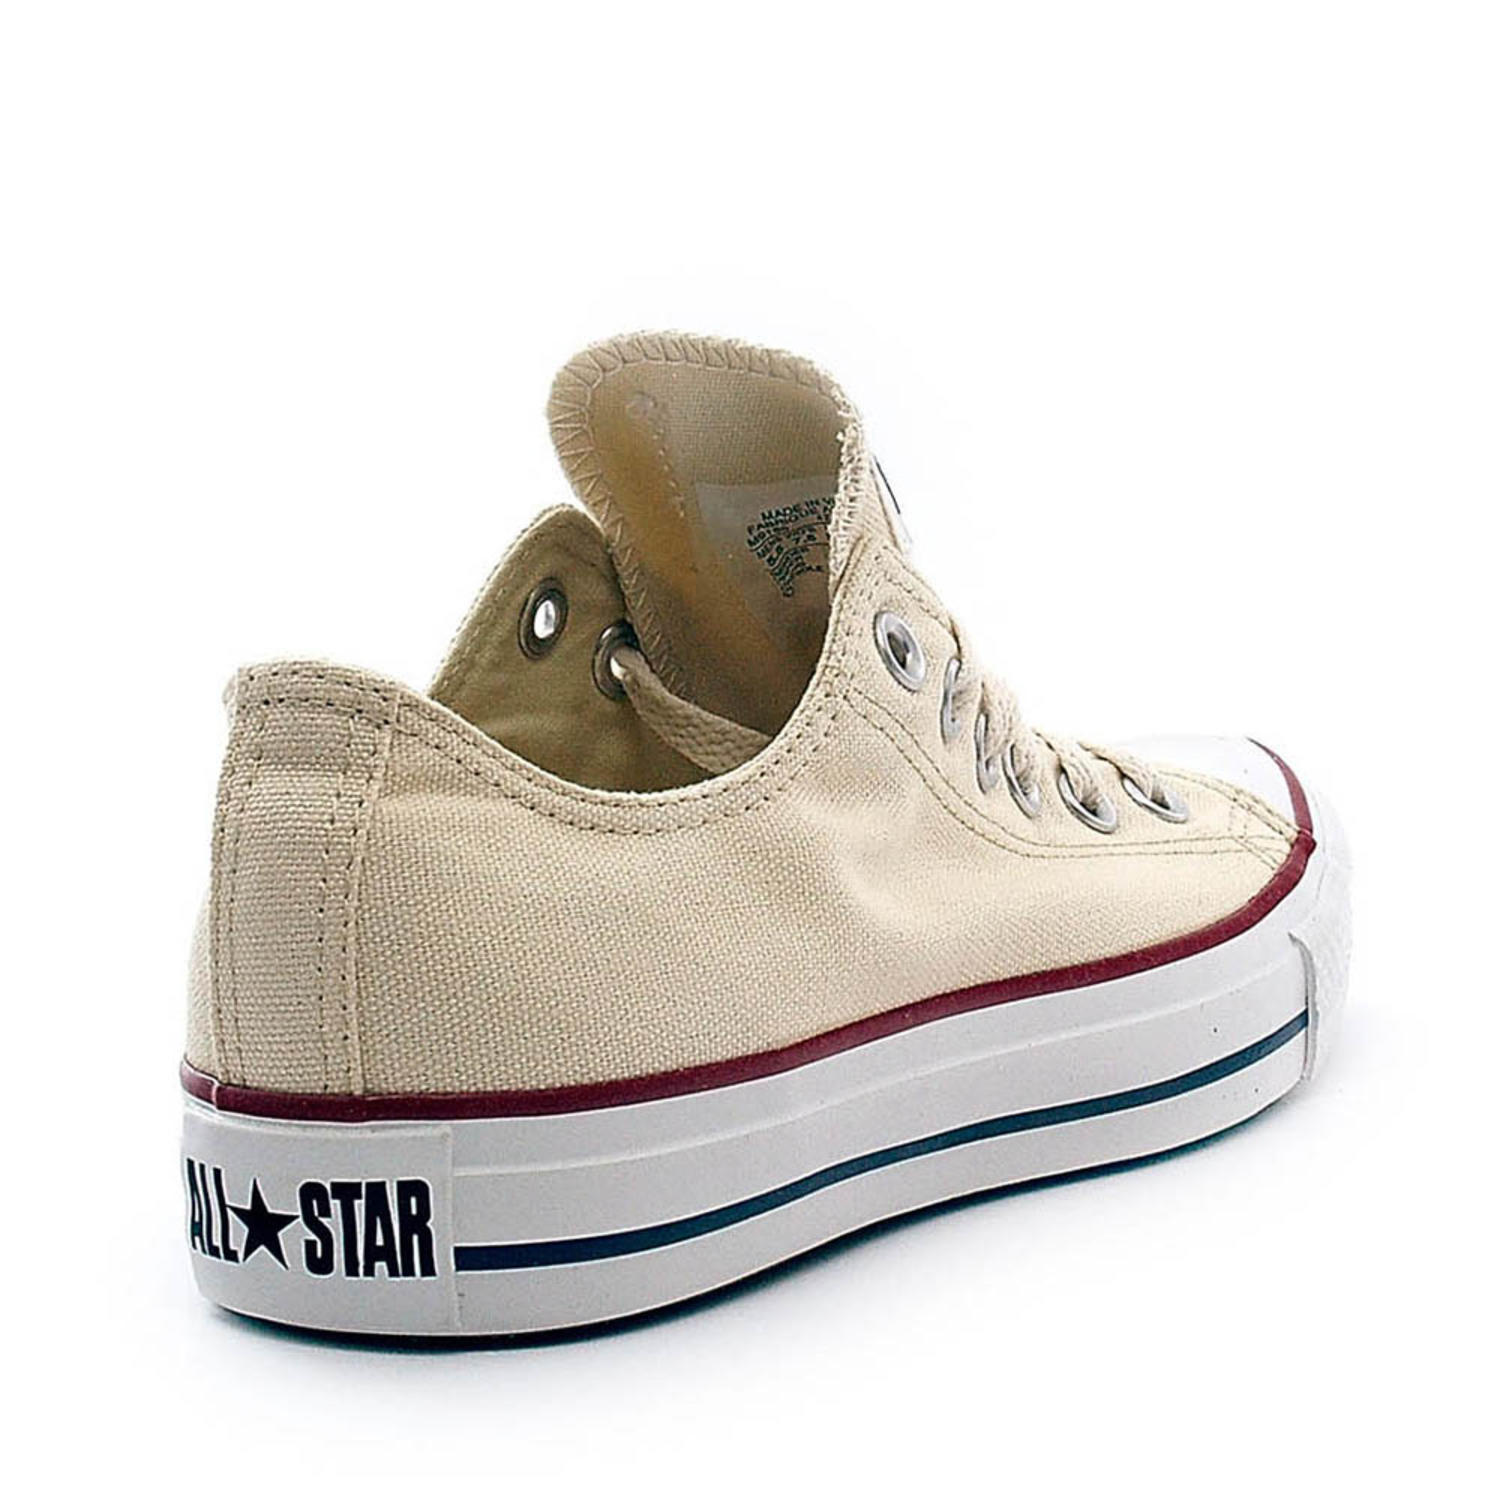 converse all star chuck taylor low cords amp buttons